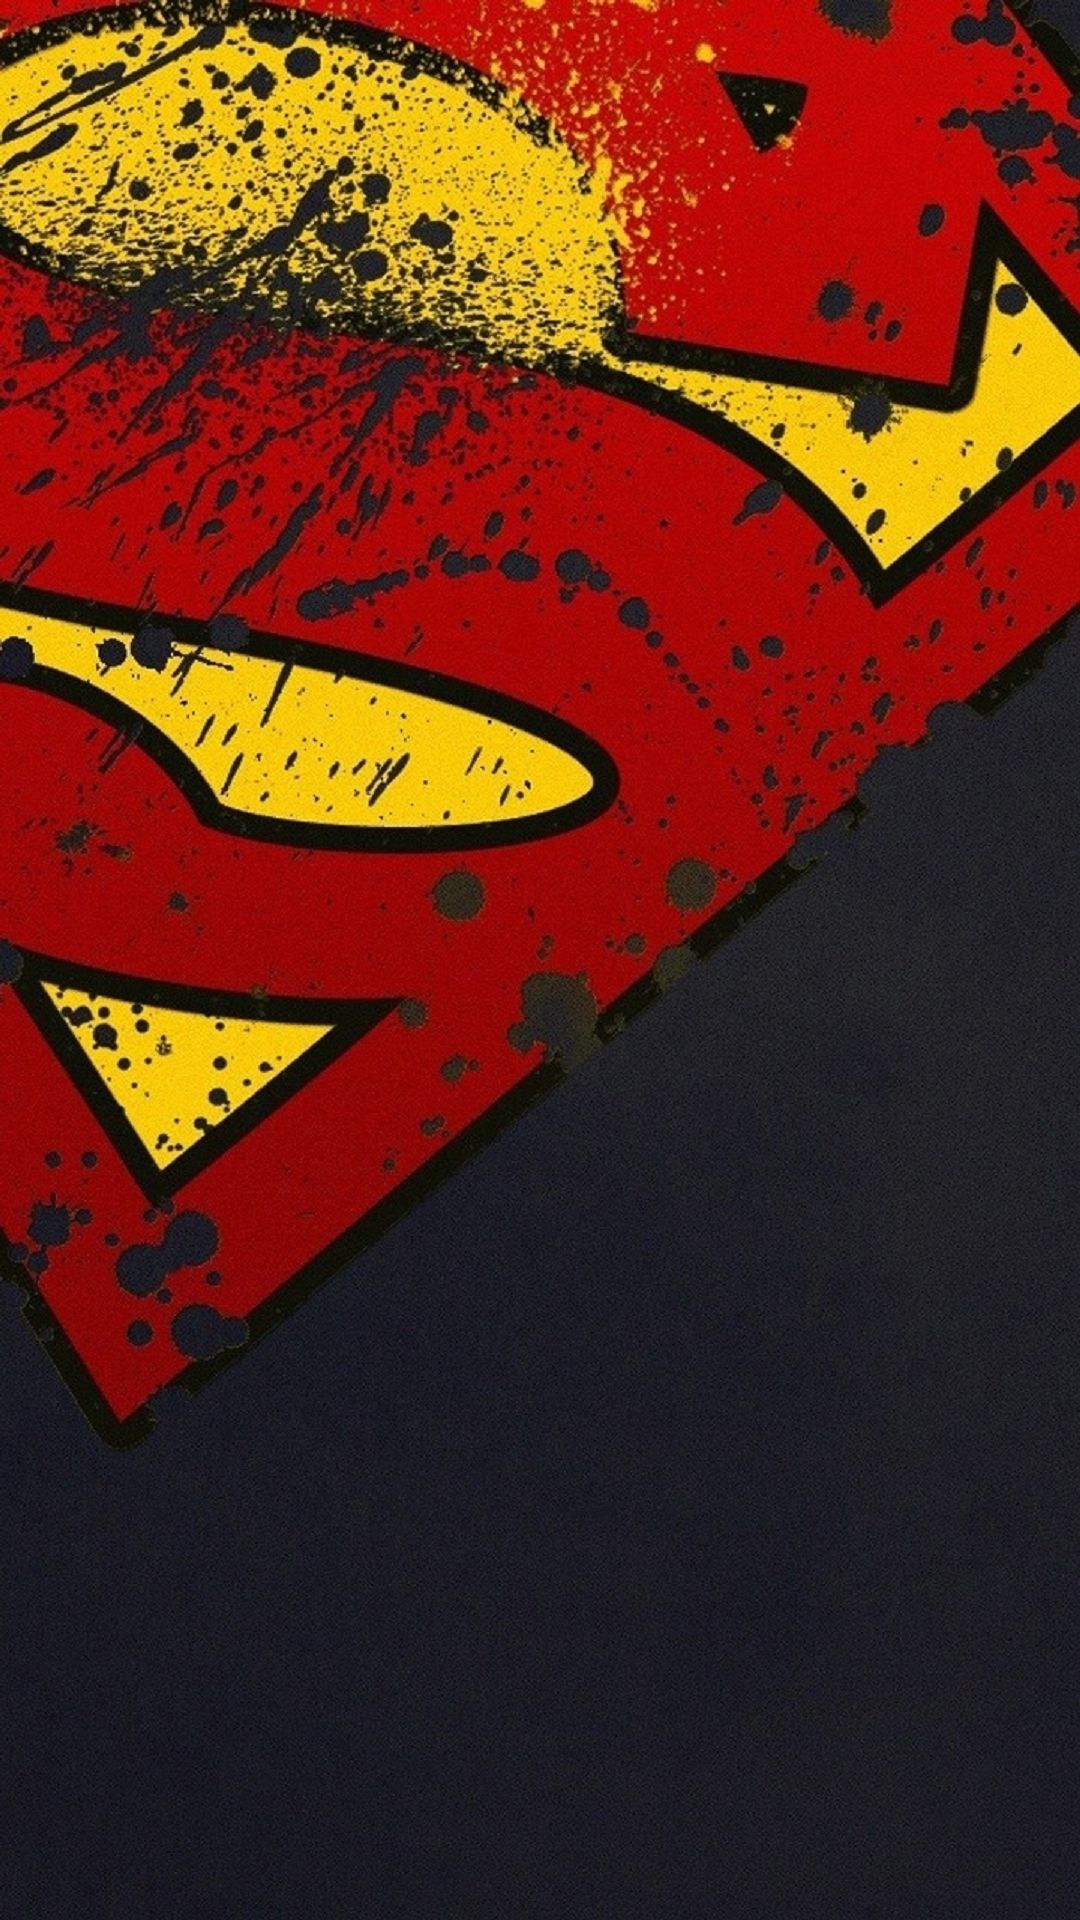 superman logo hd android wallpaper - android hd wallpapers